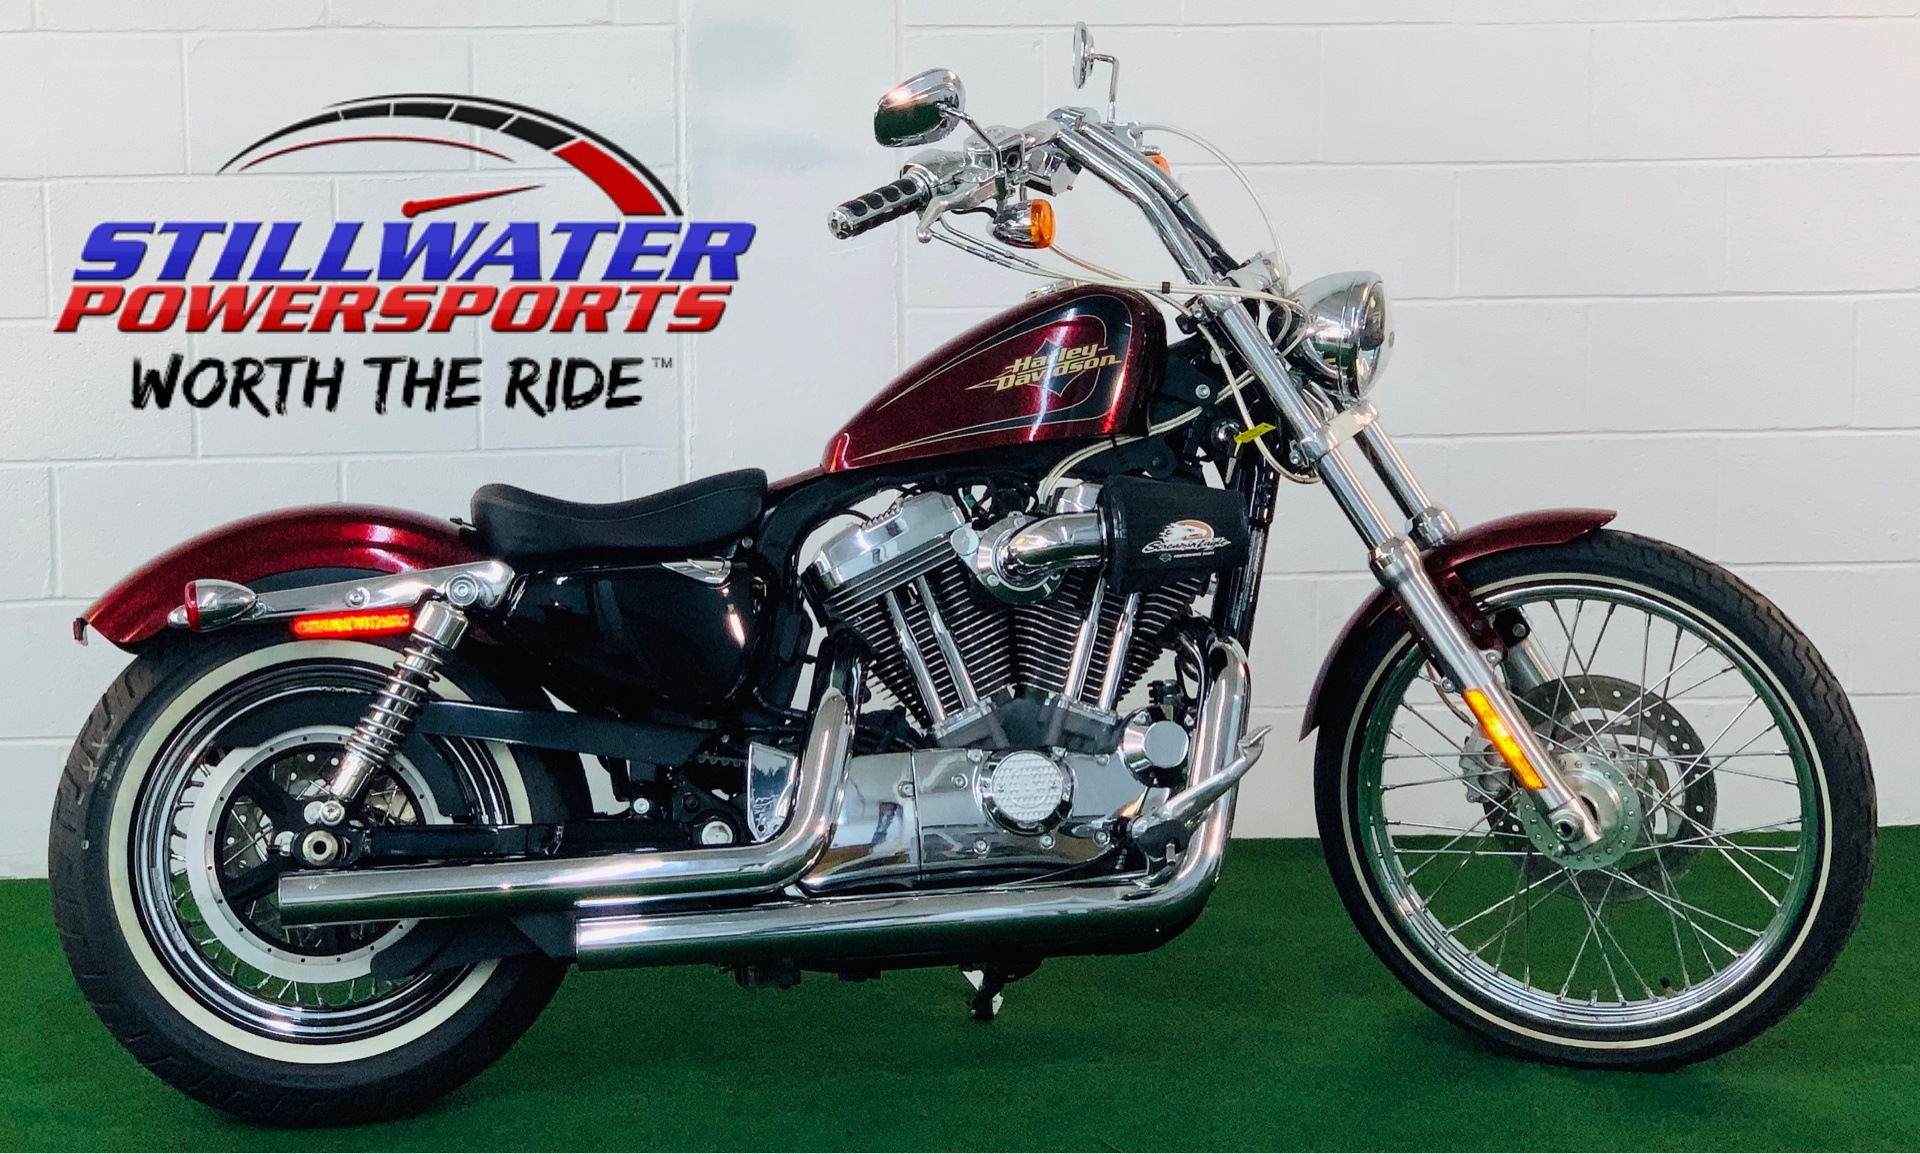 2012 Harley-Davidson 72 in Stillwater, Oklahoma - Photo 1